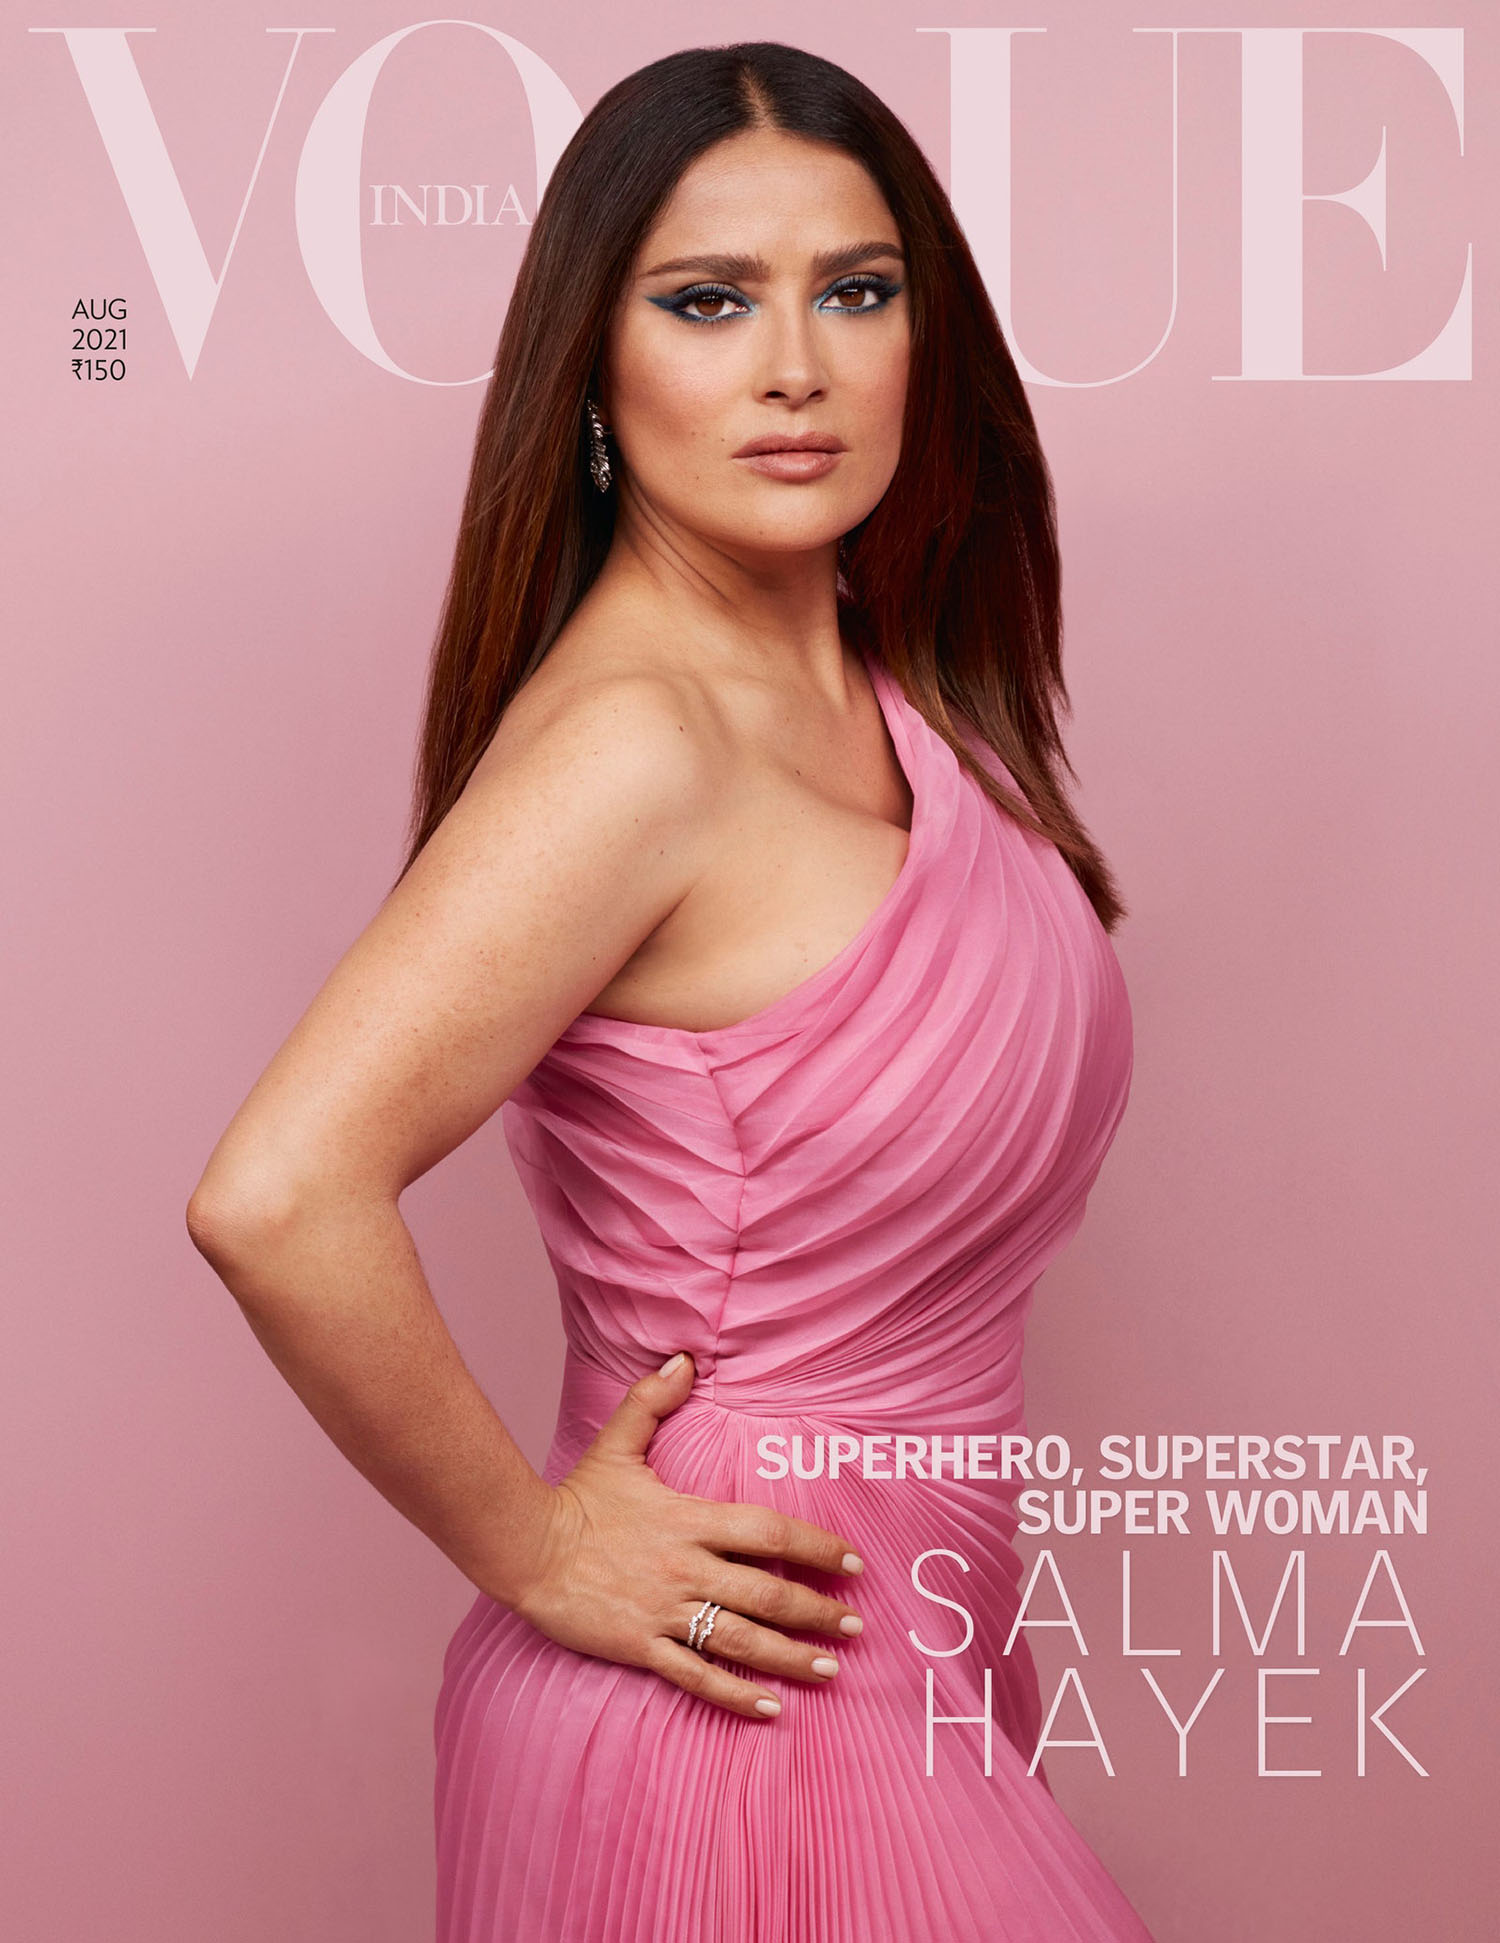 Salma Hayek covers Vogue India August 2021 by Jackie Nickerson